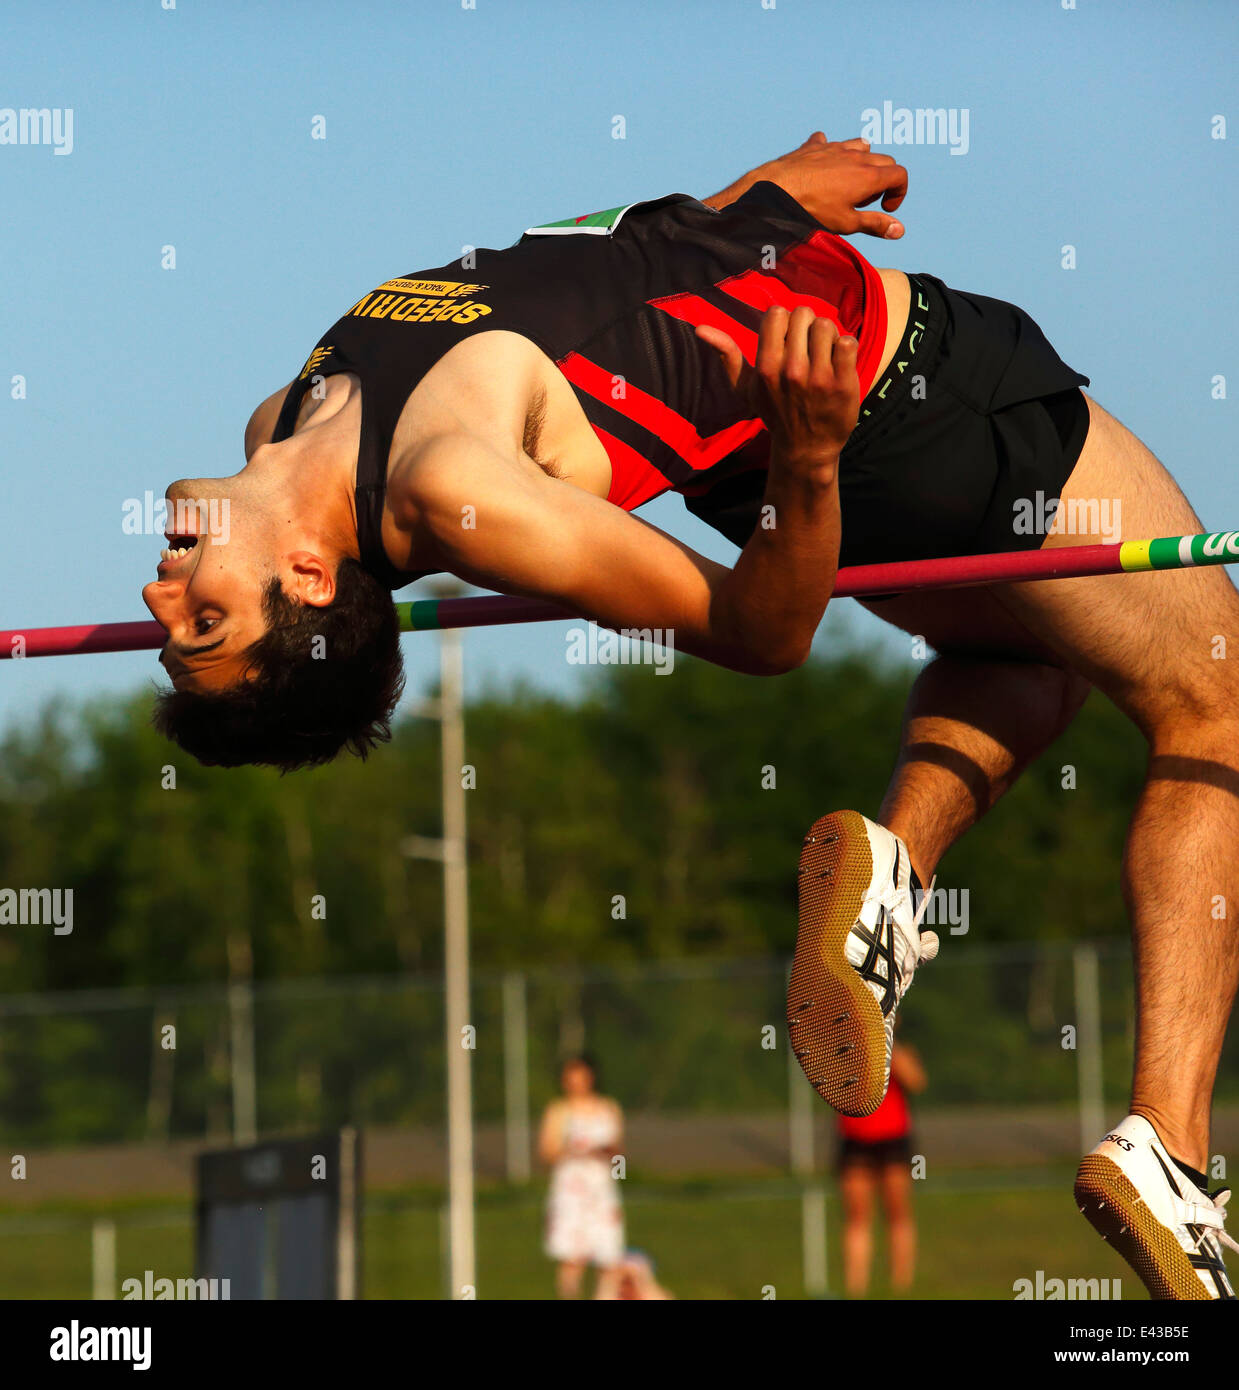 Mitchell Torres leaps in the men's high jump at the Canadian Track & Field Championships June 28, 2014 in - Stock Image